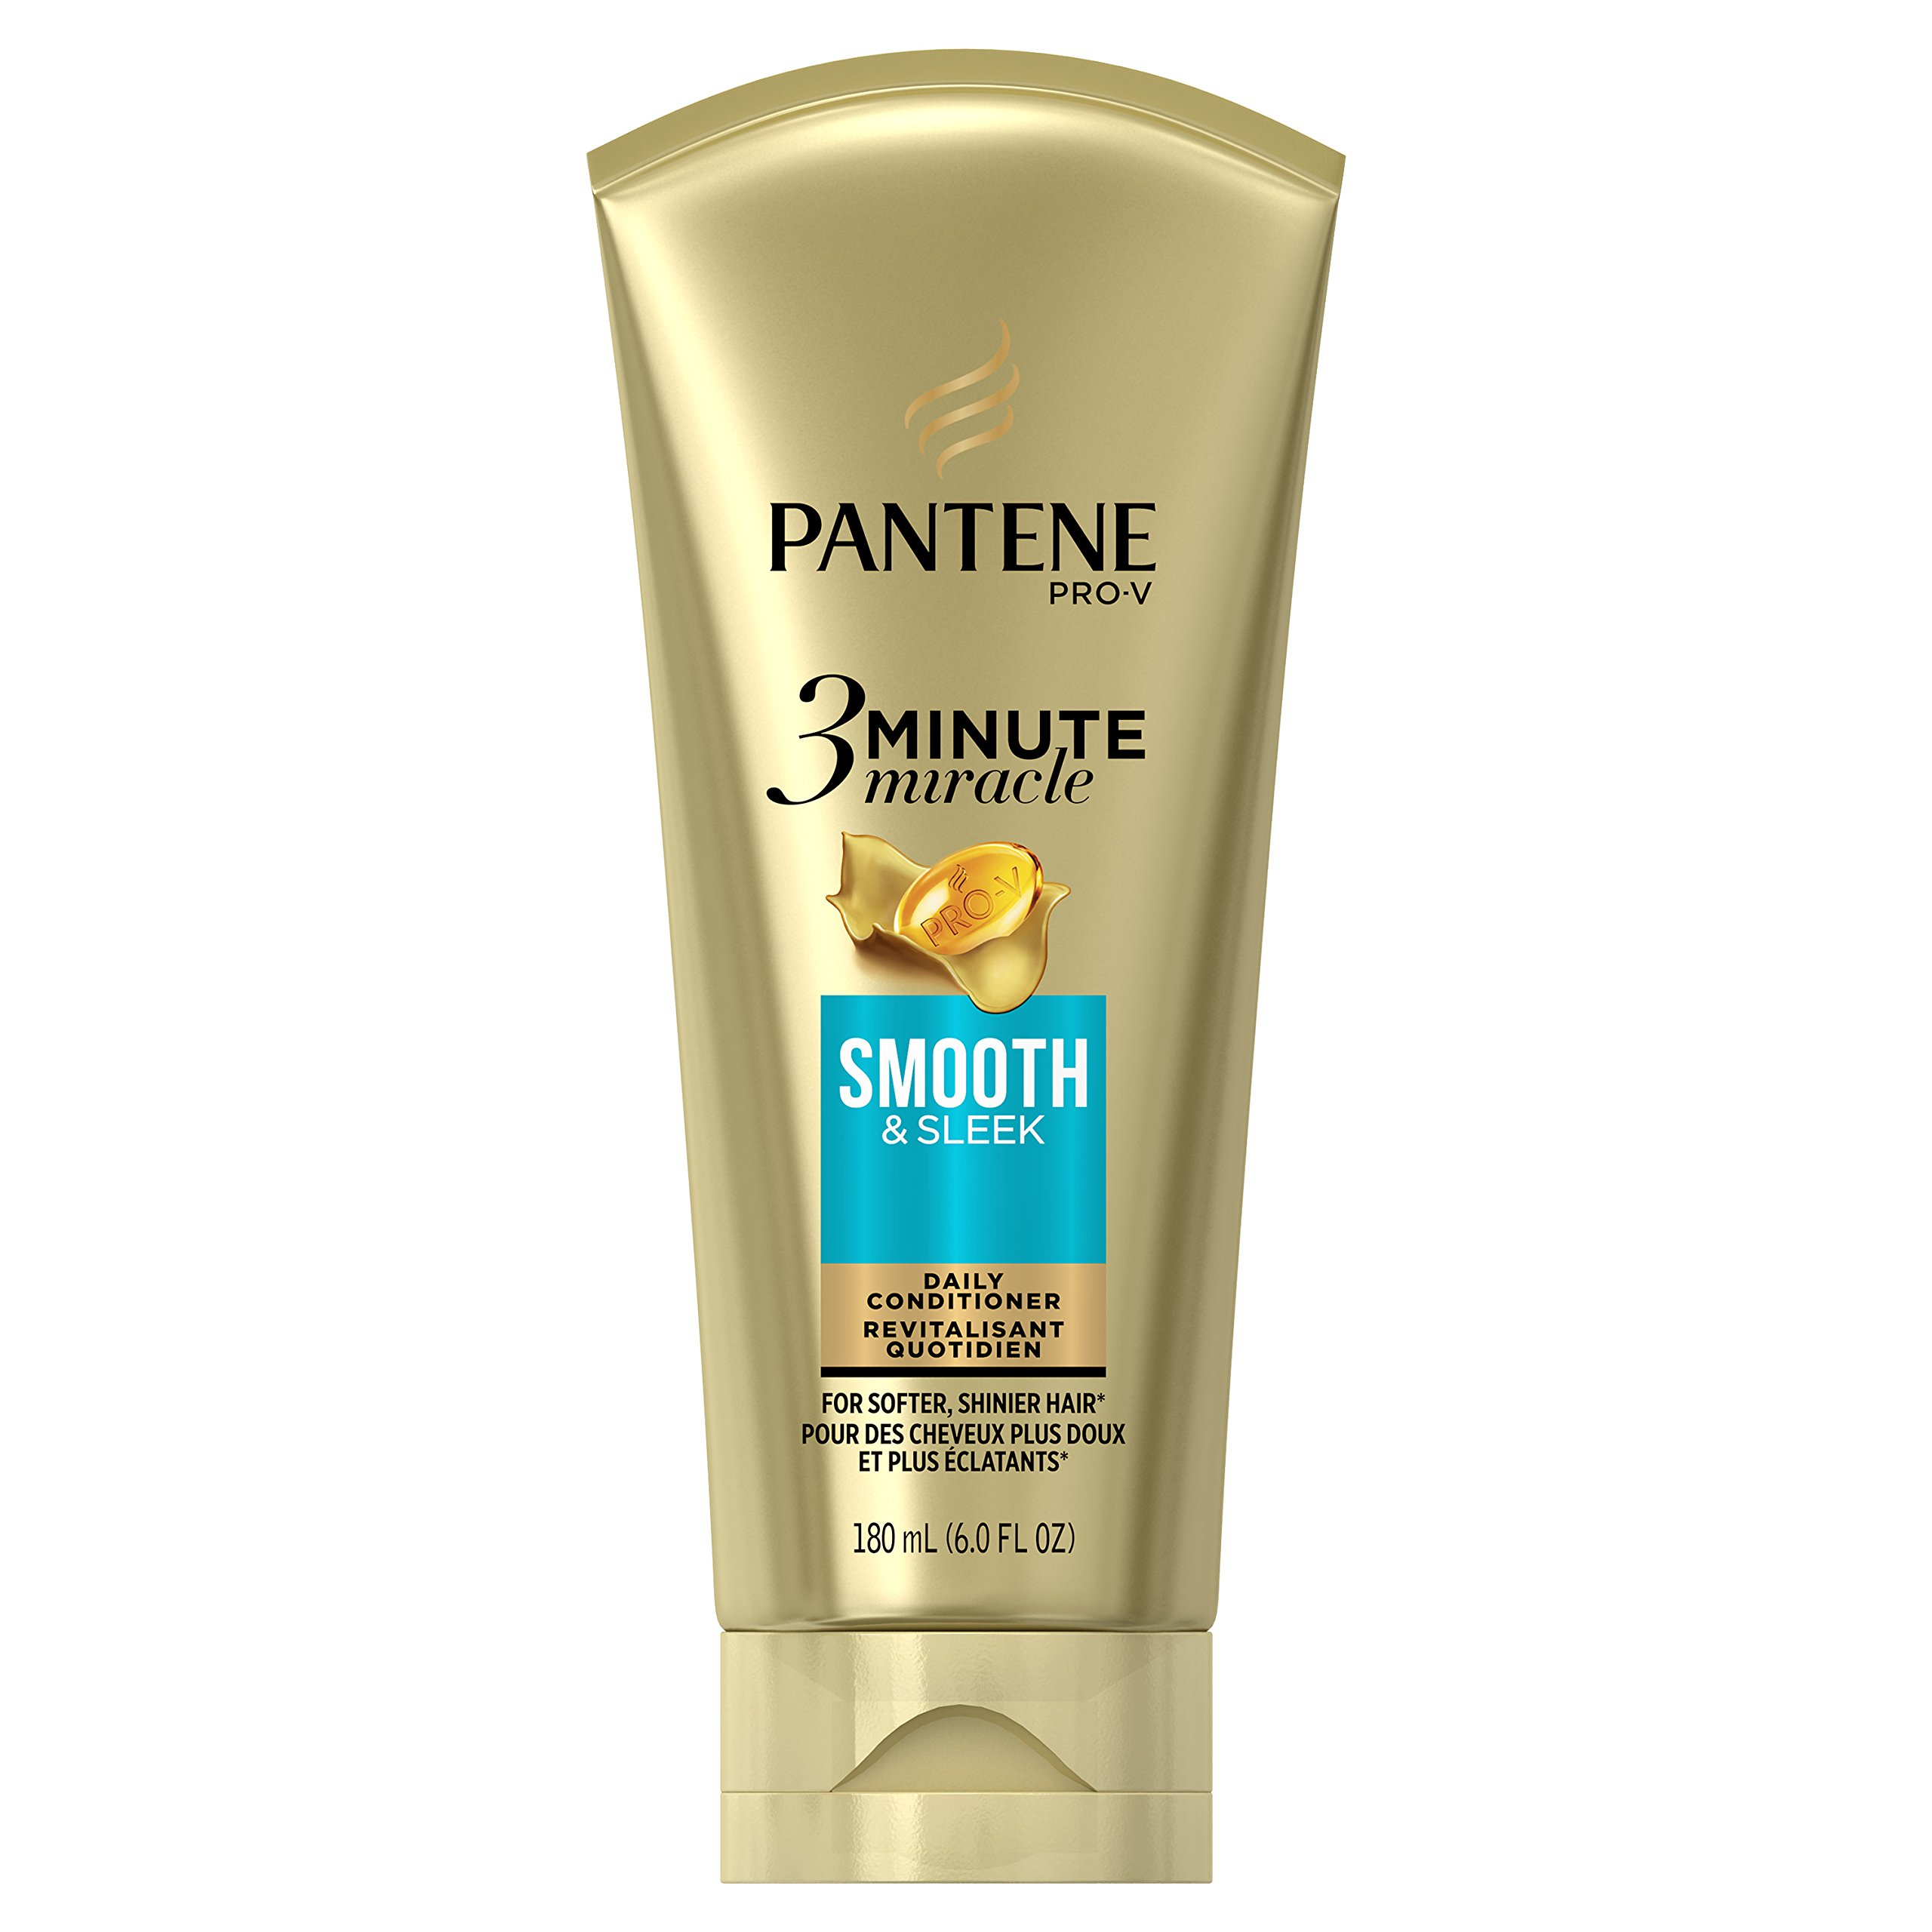 Pantene Smooth and Sleek 3 Minute Miracle Deep Conditioner, 6 Fluid Ounce,Packaging May Vary